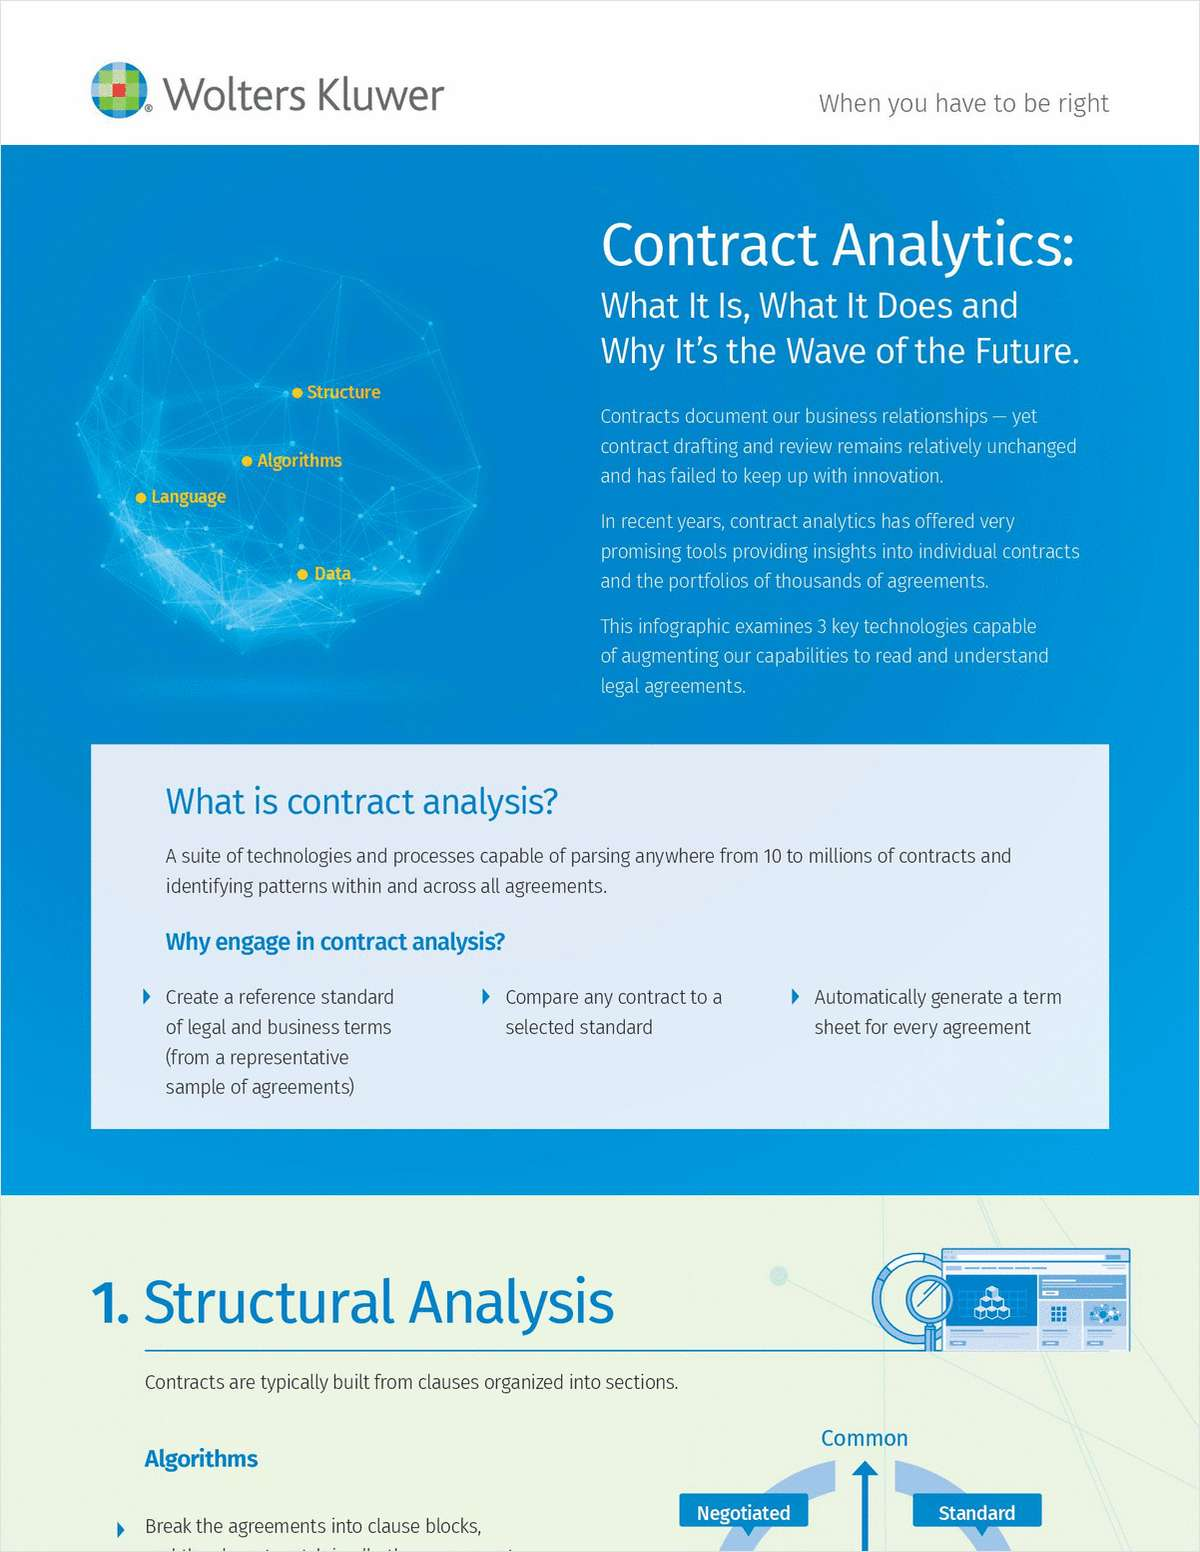 Contract Analytics: What It Is, What It Does and Why It's the Wave of the Future